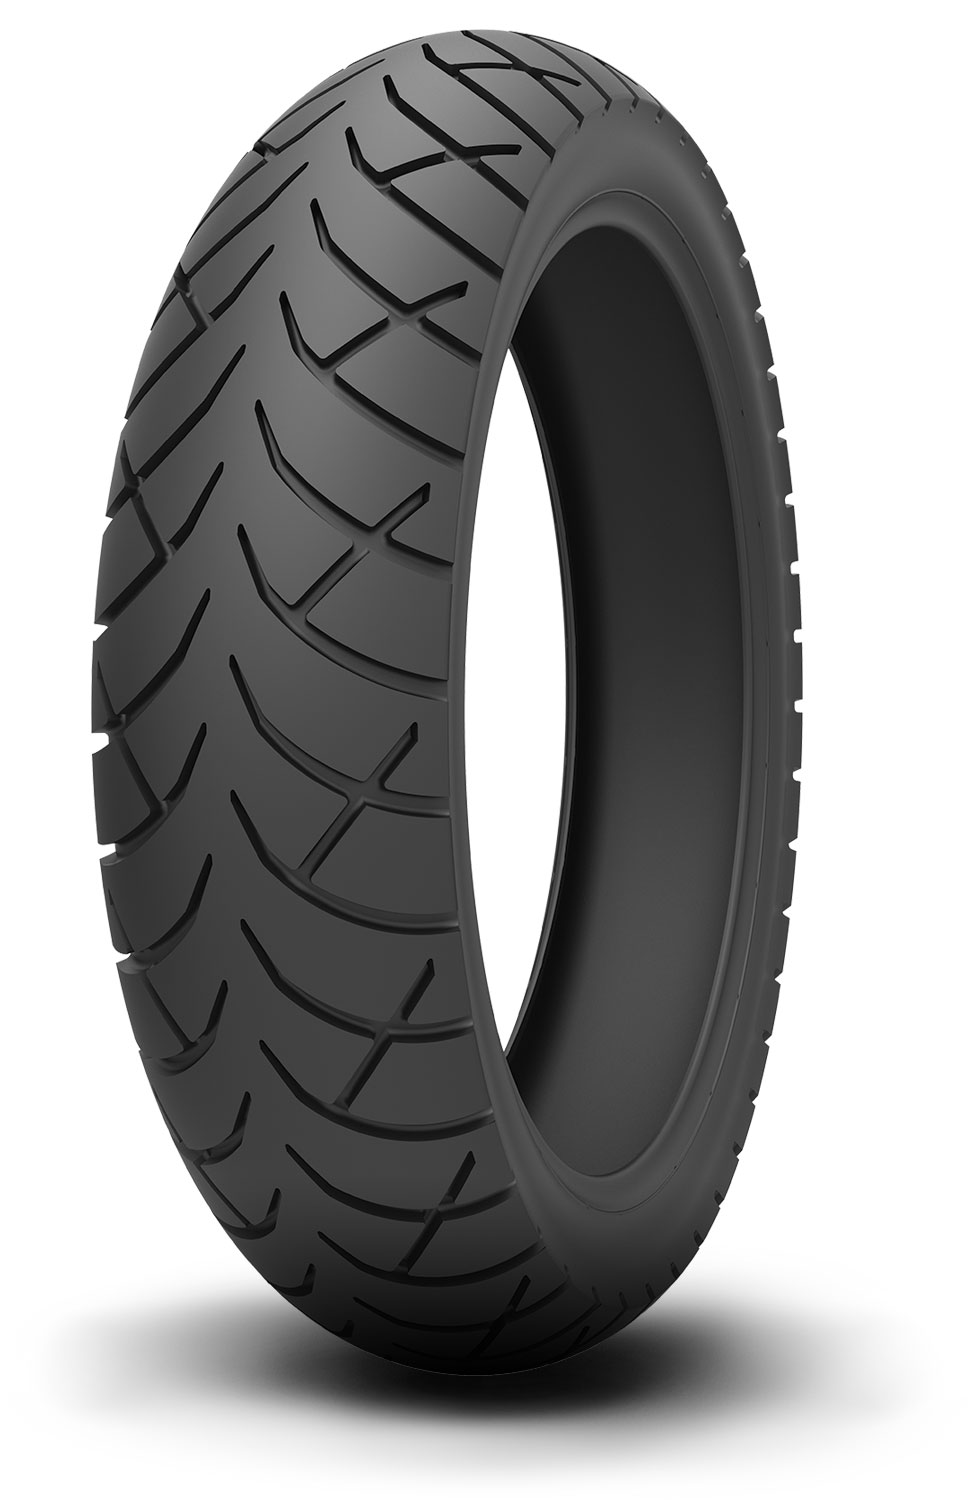 Kenda Dual Sport Tires & More | Powersports | Kenda Tires | Cruiser Sport Touring Tires | Find a ...